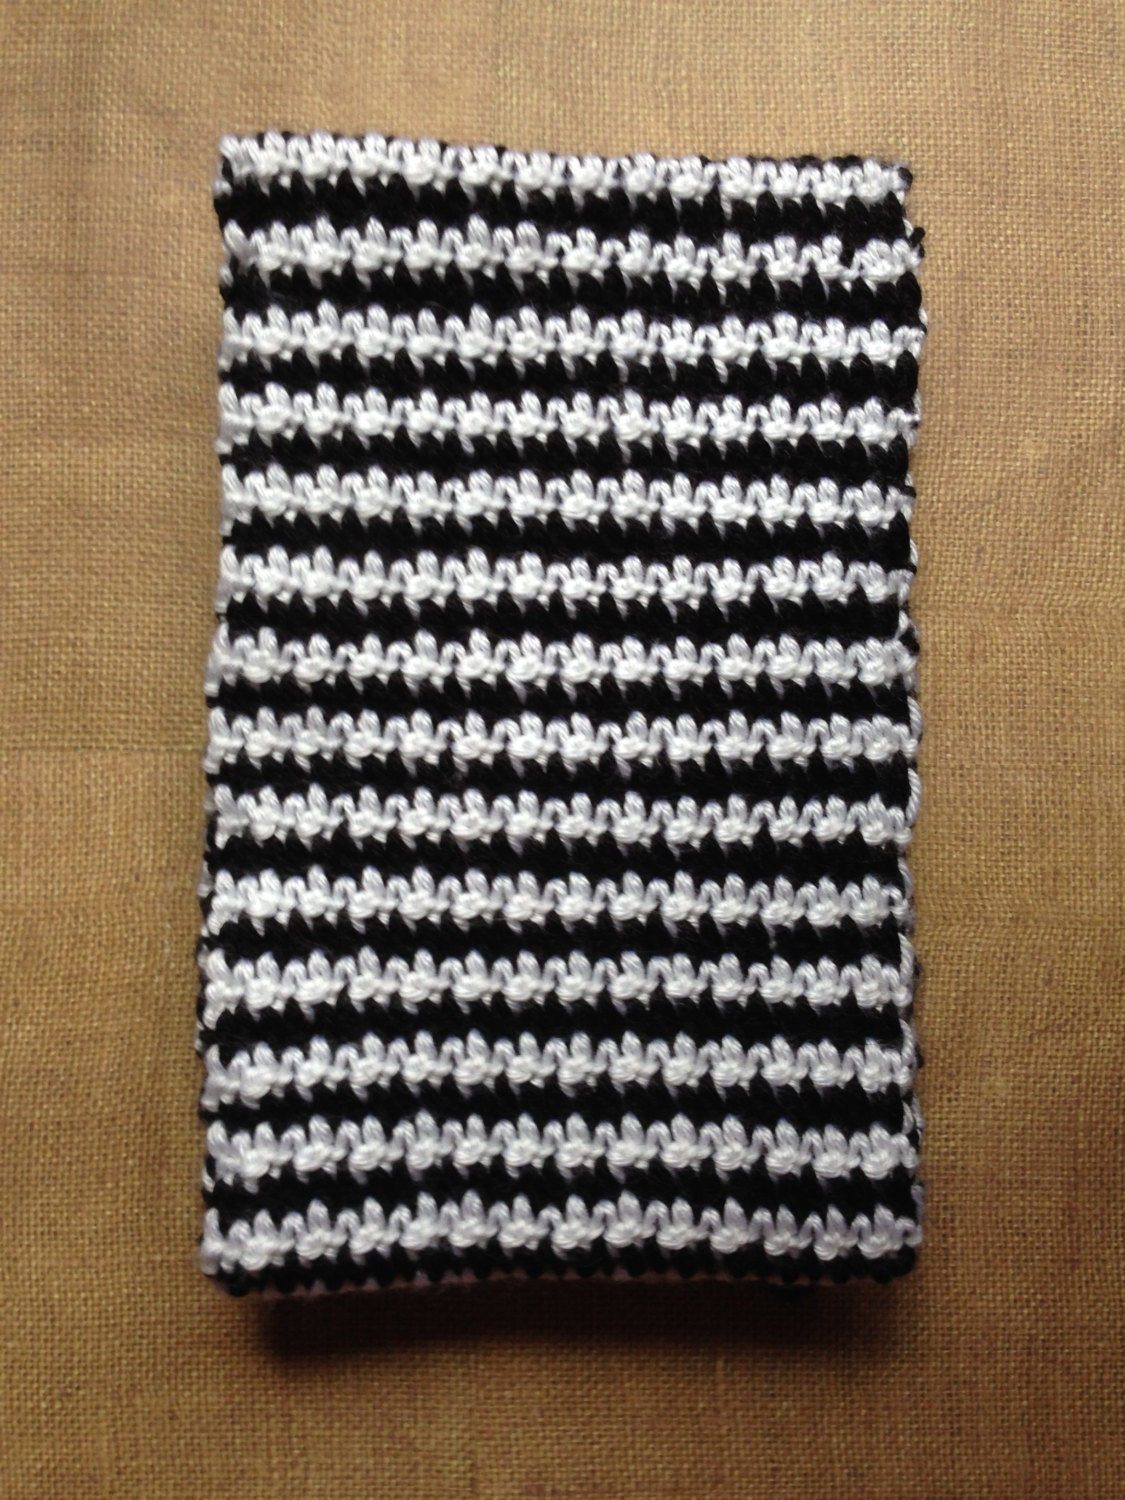 Handmade Knit Crochet Houndstooth Scarf - Gift For Her - Soft - Cozy ...